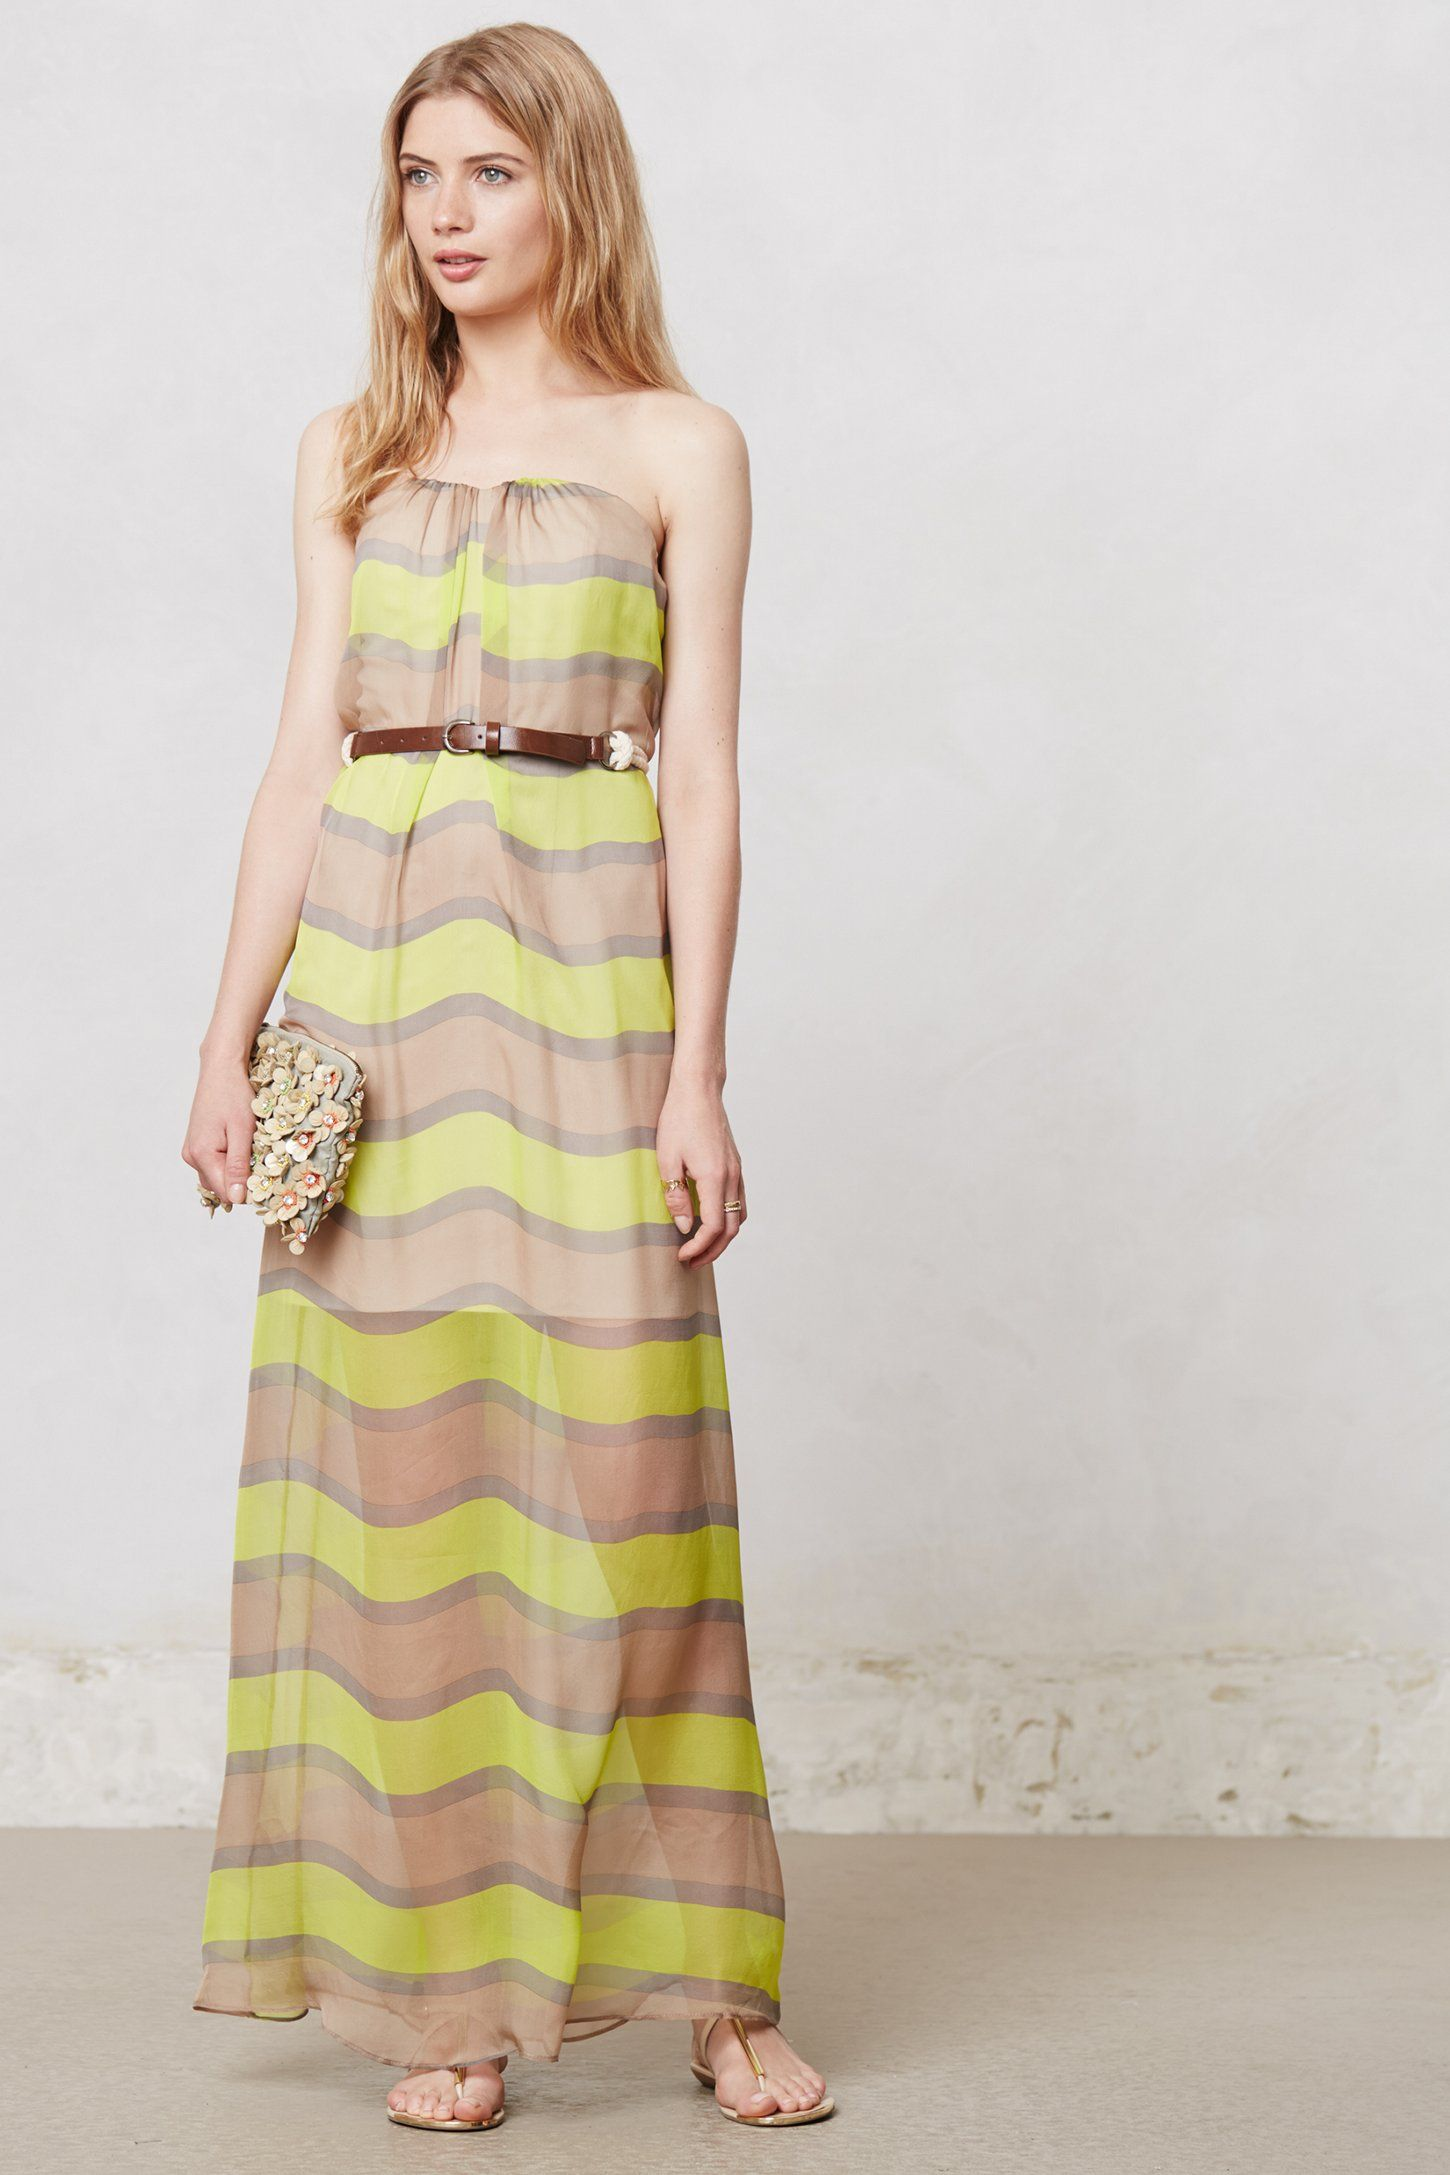 Marbella maxi dress anthropologie style pinterest